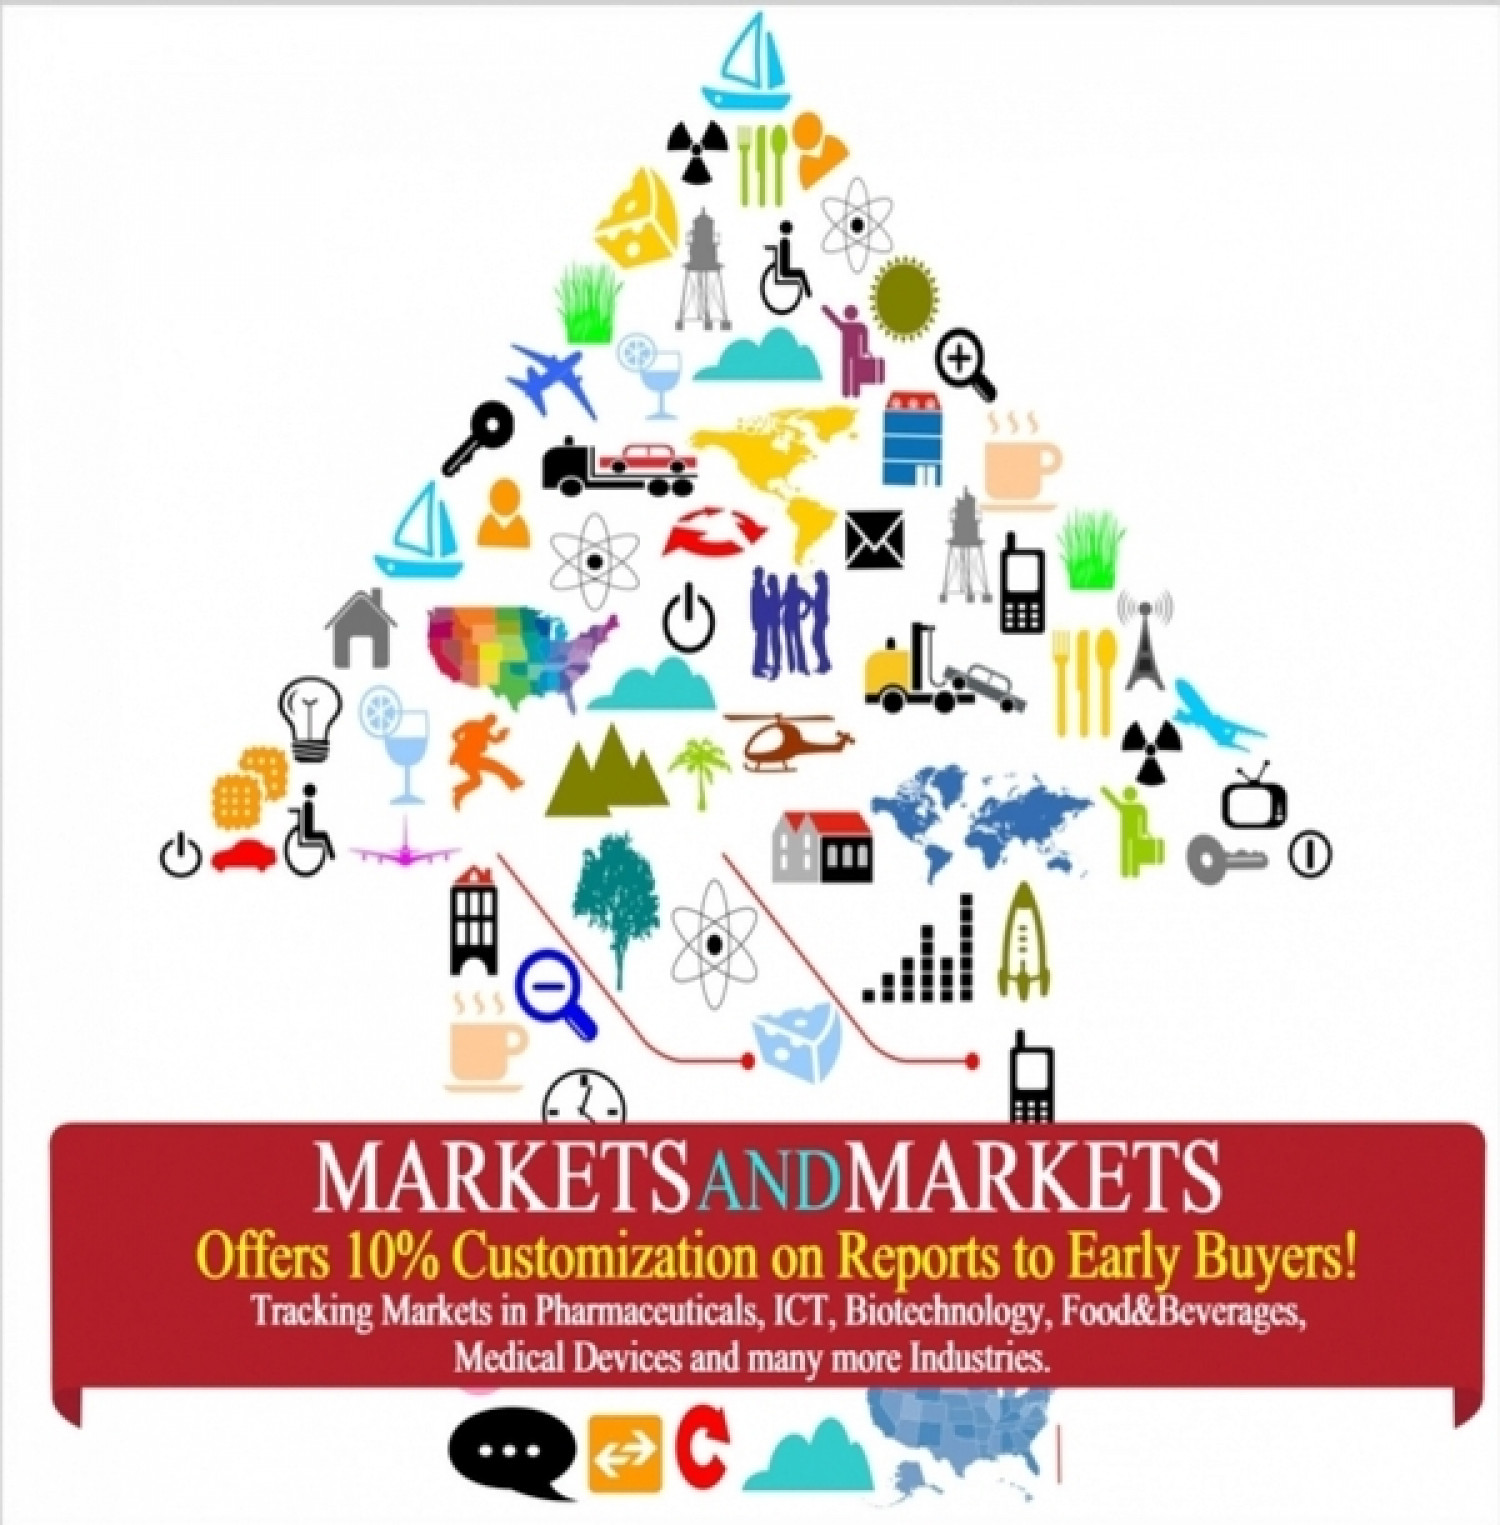 Market Research - MarketsandMarkets - Tracking Markets For You Infographic